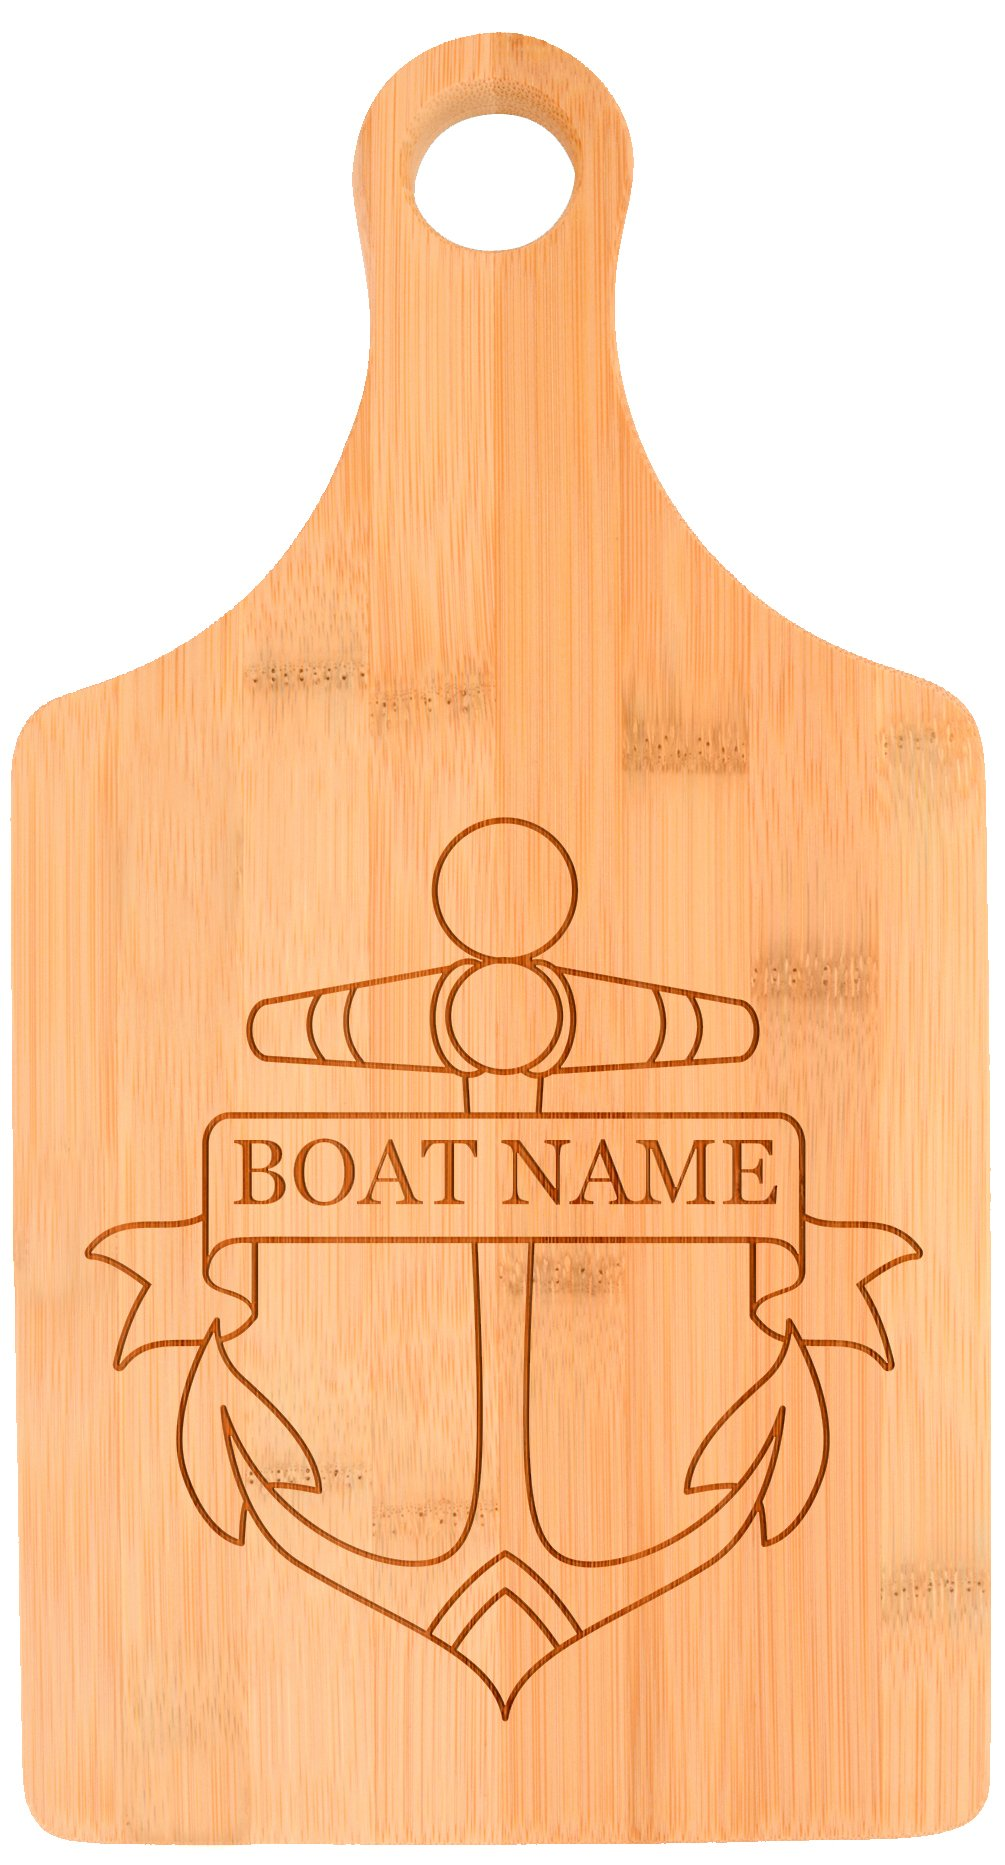 Customized Boating Gift Nautical Boat Name Anchor Personalized Paddle Shaped Bamboo Cutting Board by Personalized Gifts